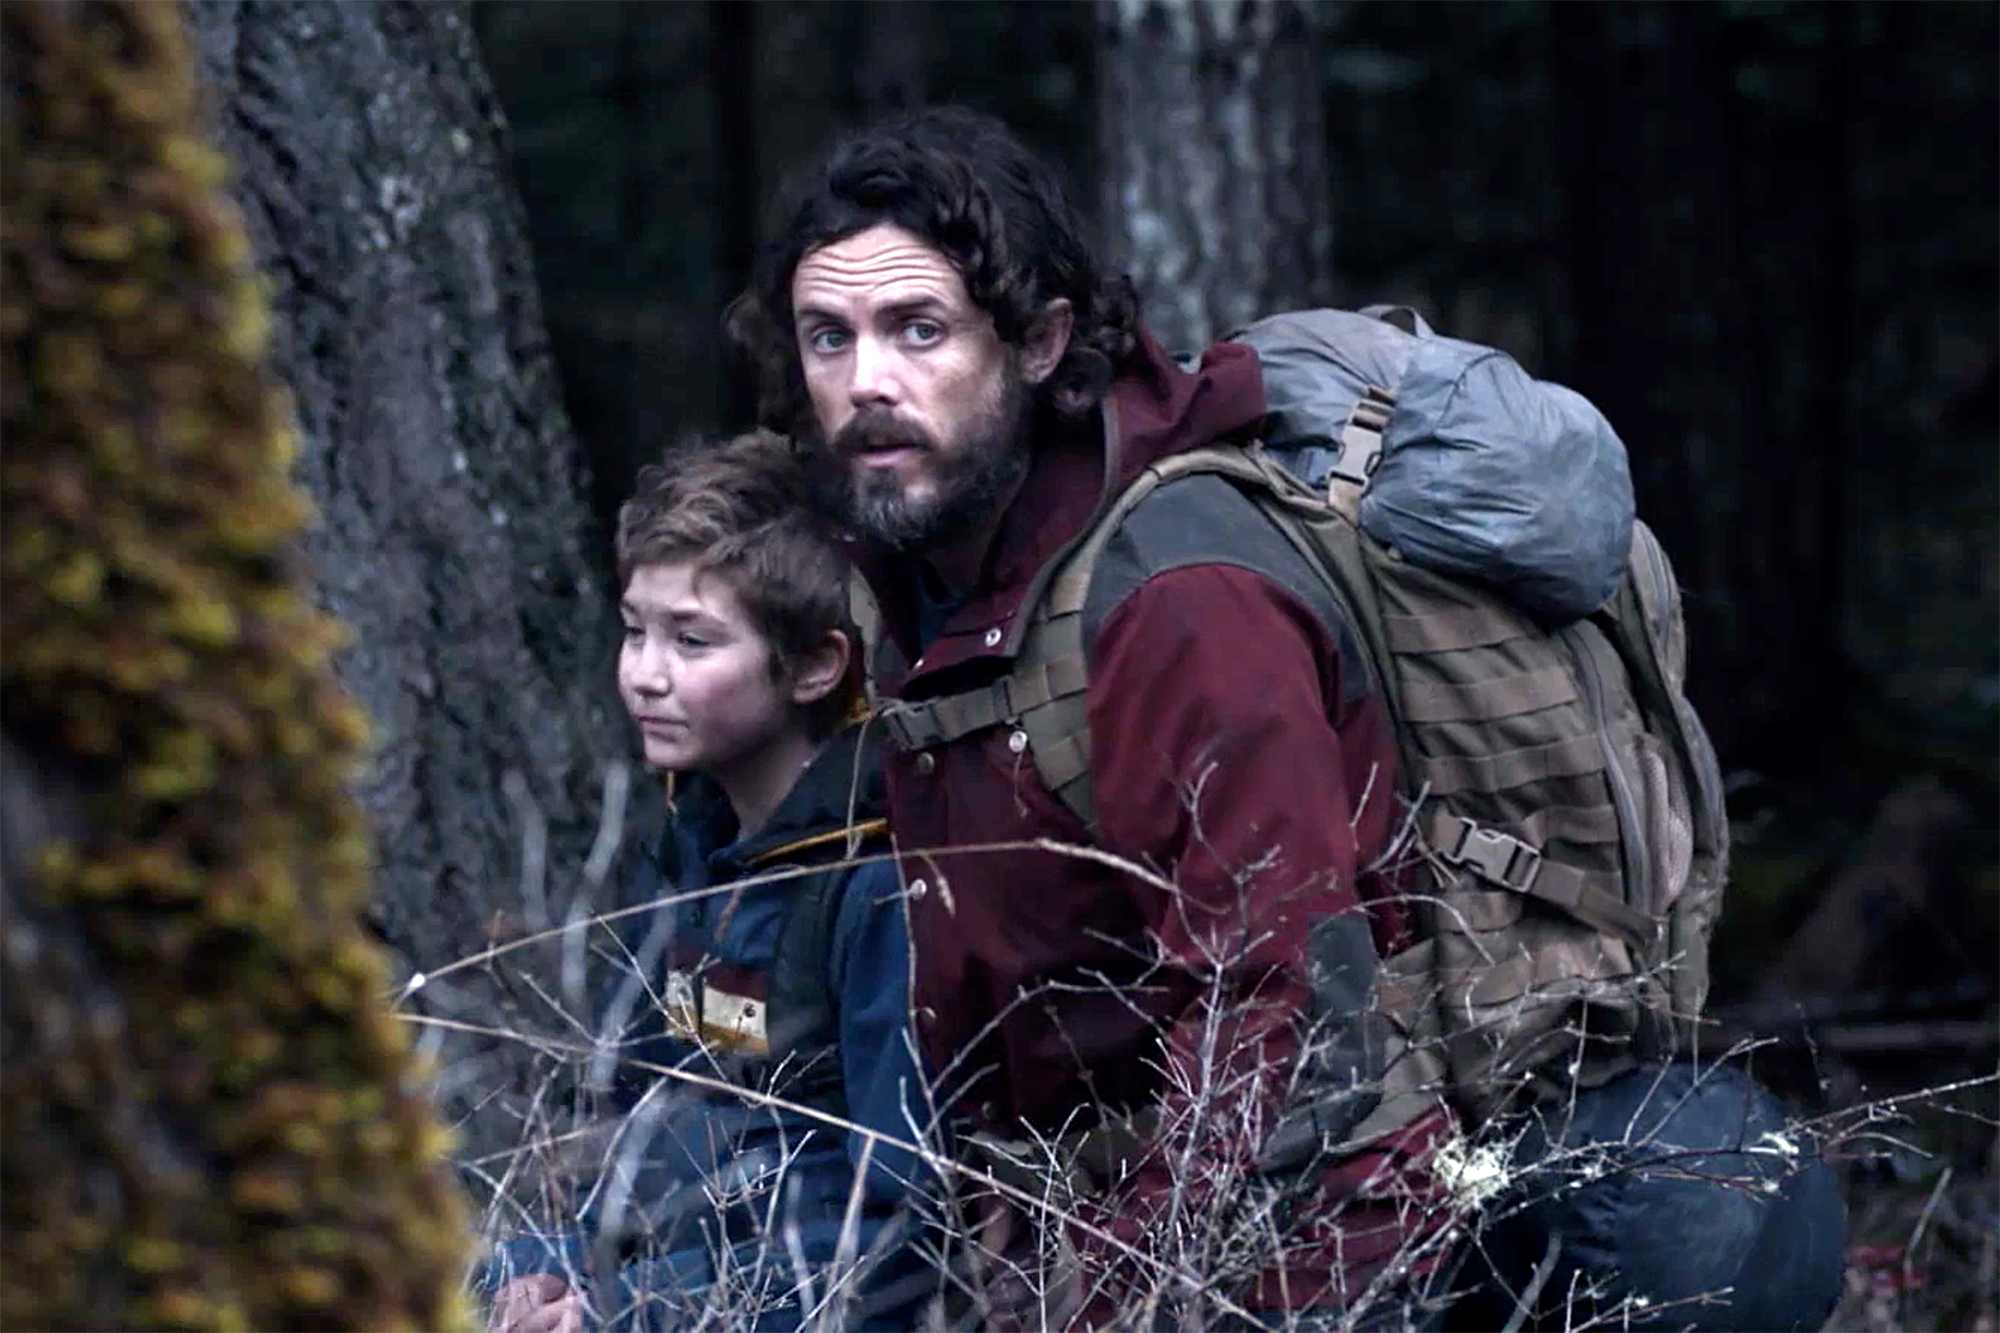 Watch Gritty Trailer for Casey Affleck's Post-Apocalyptic Survival Film 'Light of My Life'